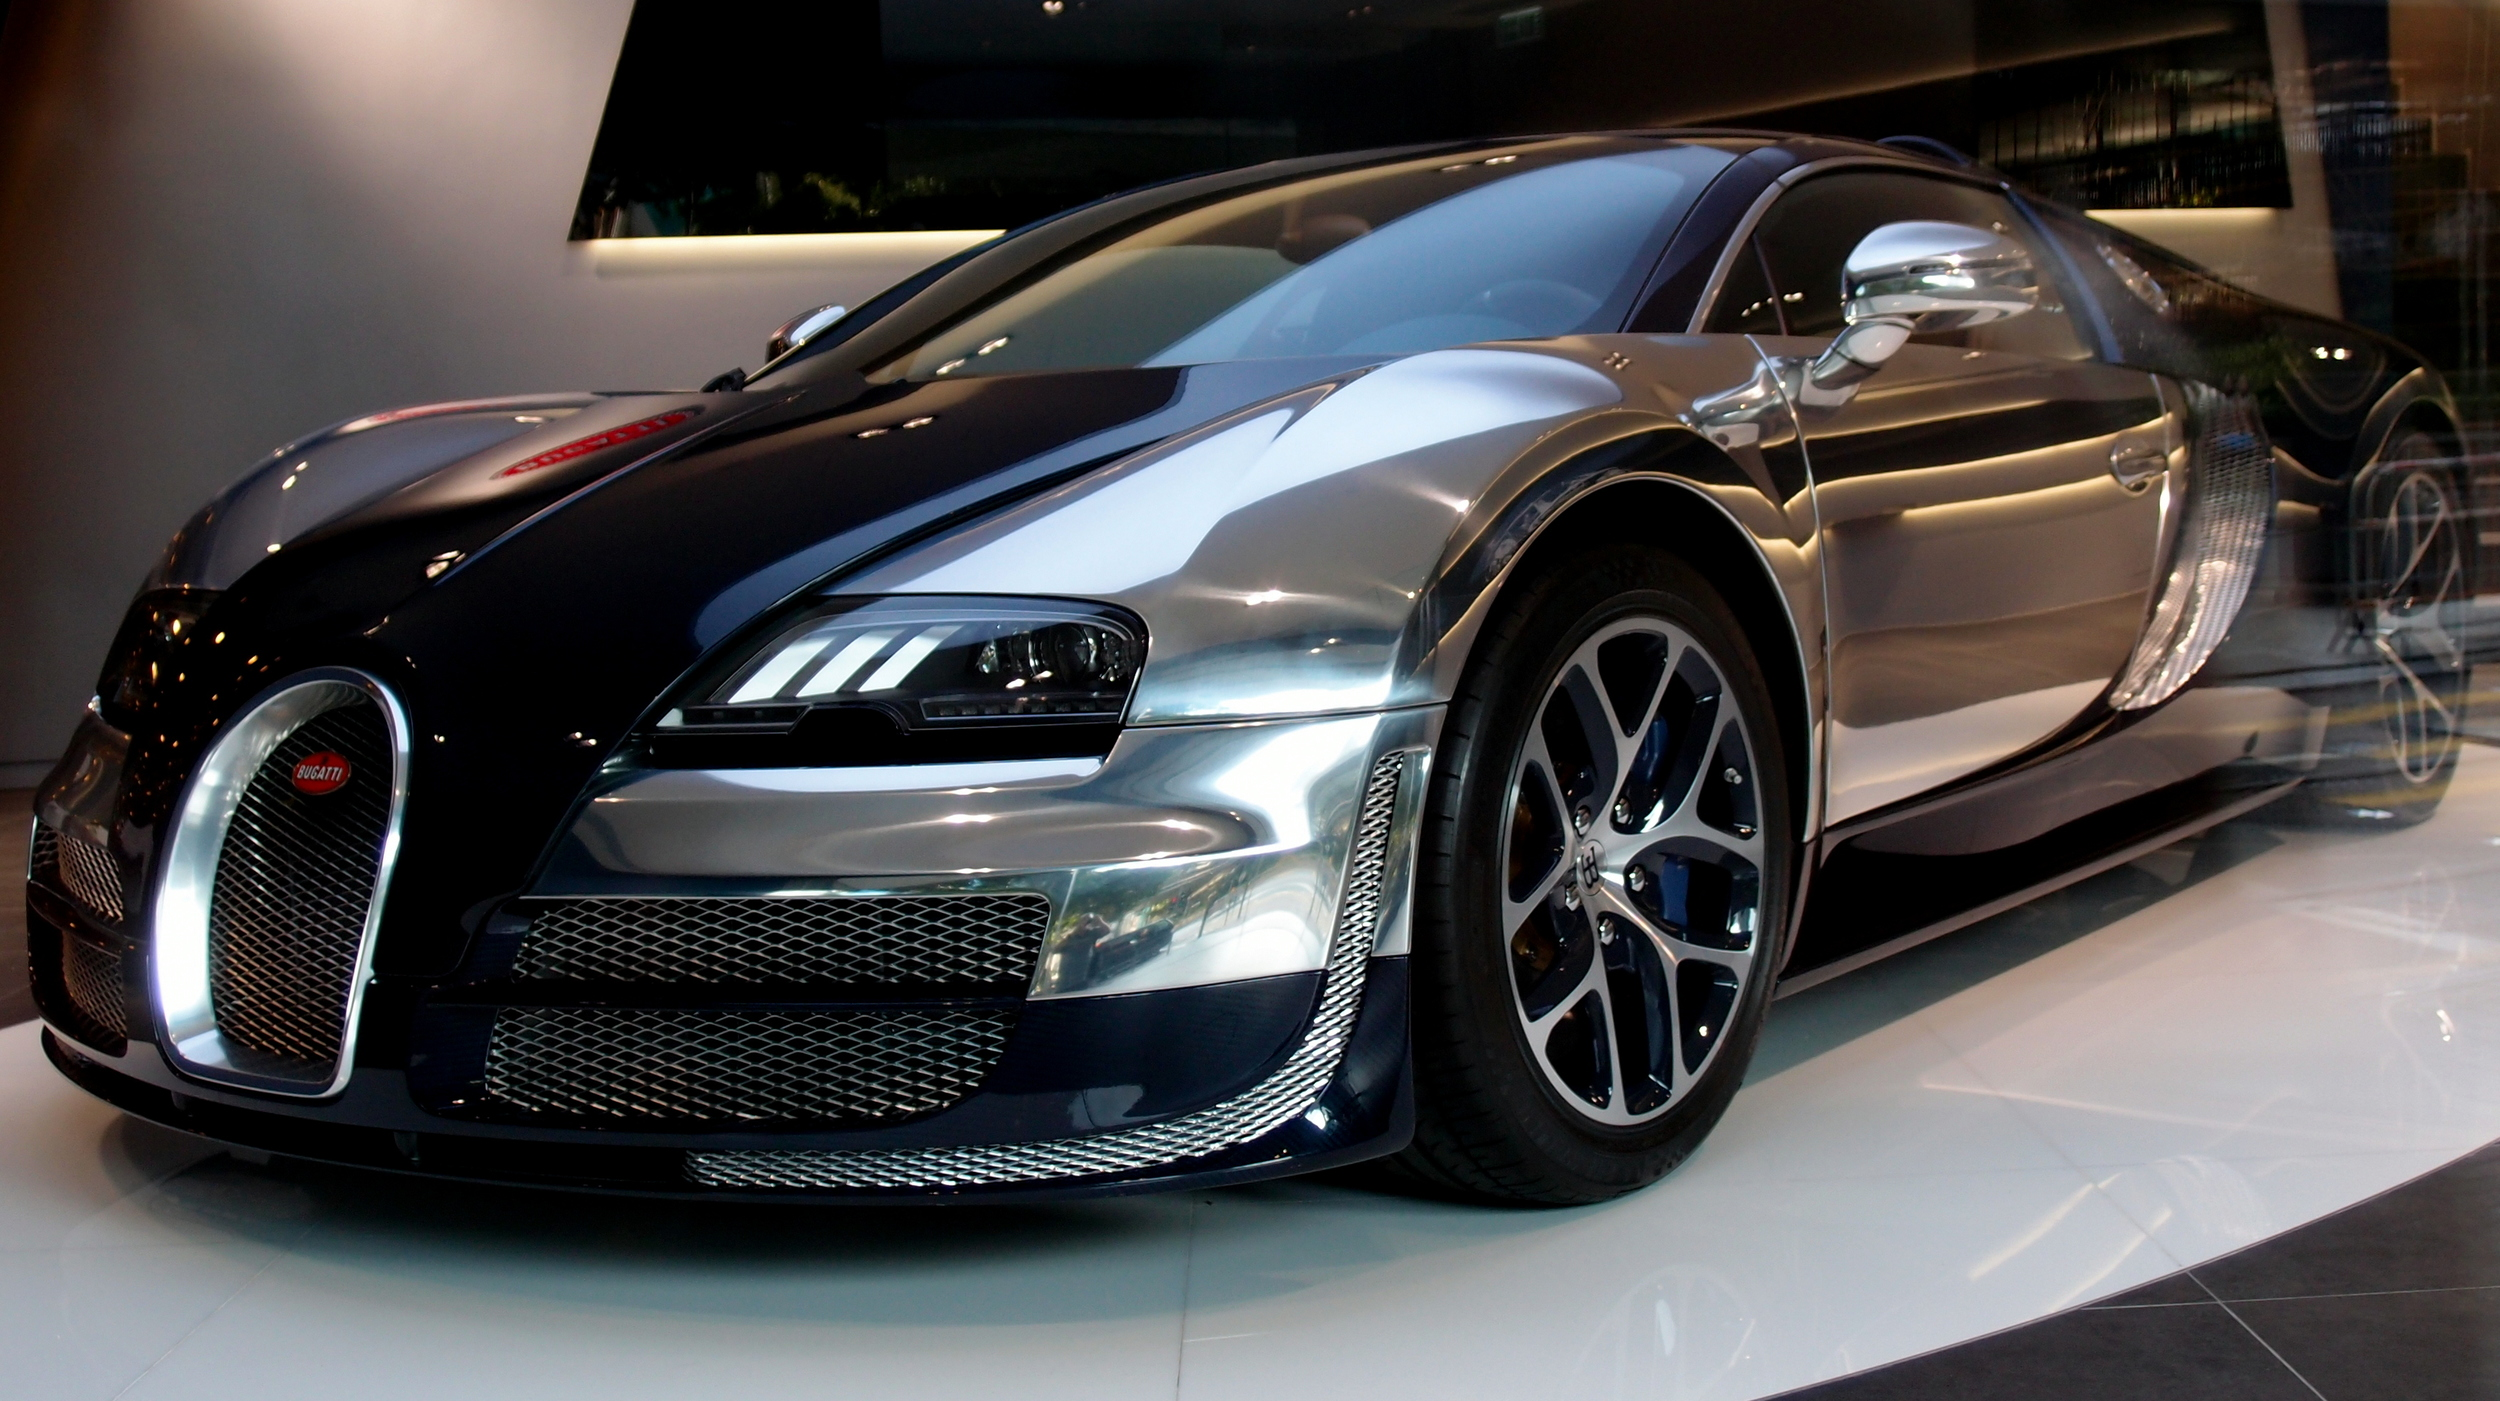 Oh my, the sheer beauty of the Bugatti